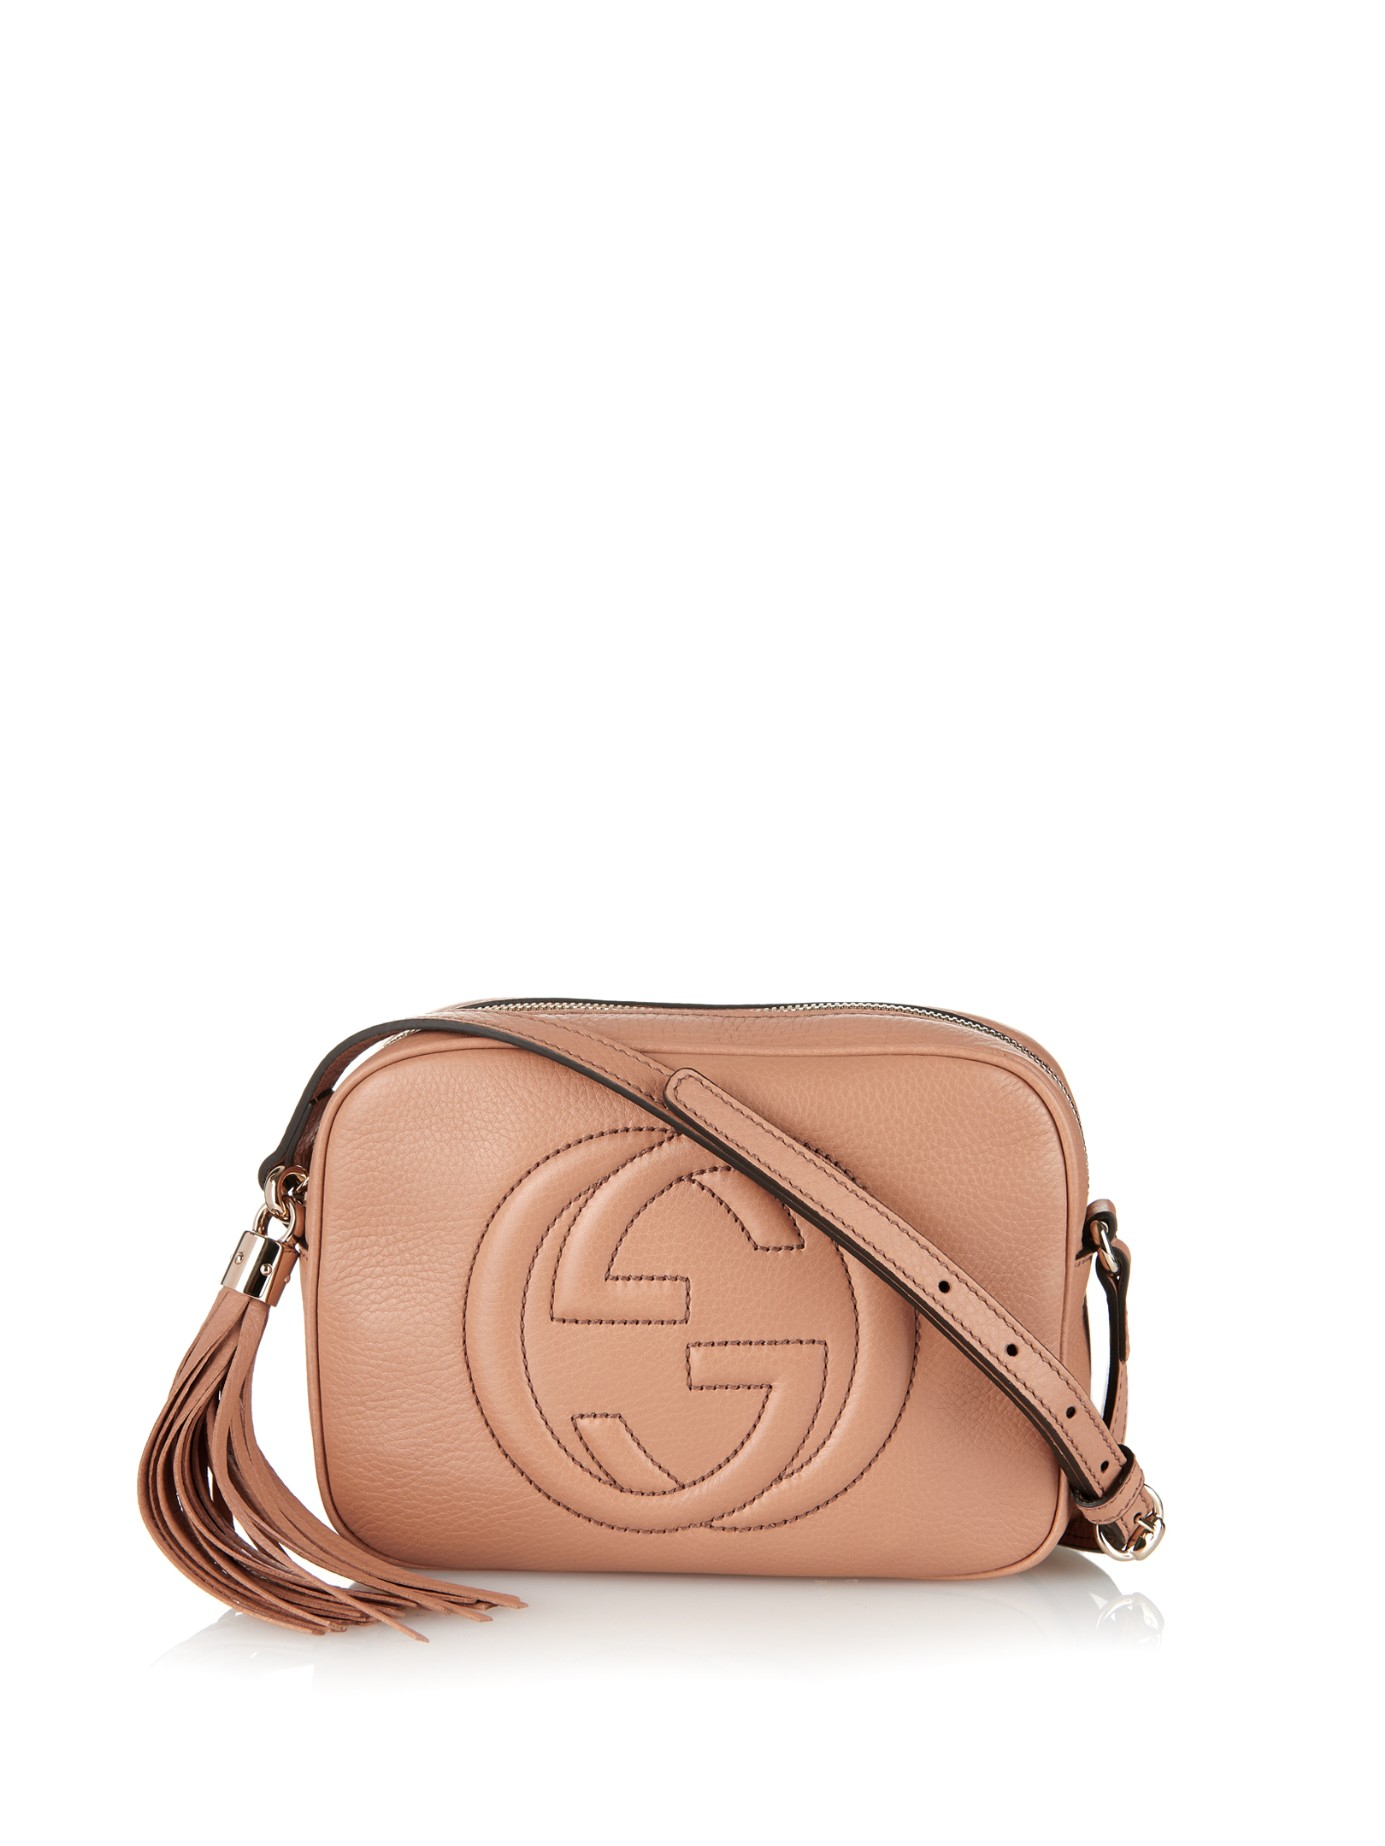 lyst gucci soho leather cross body bag in brown. Black Bedroom Furniture Sets. Home Design Ideas